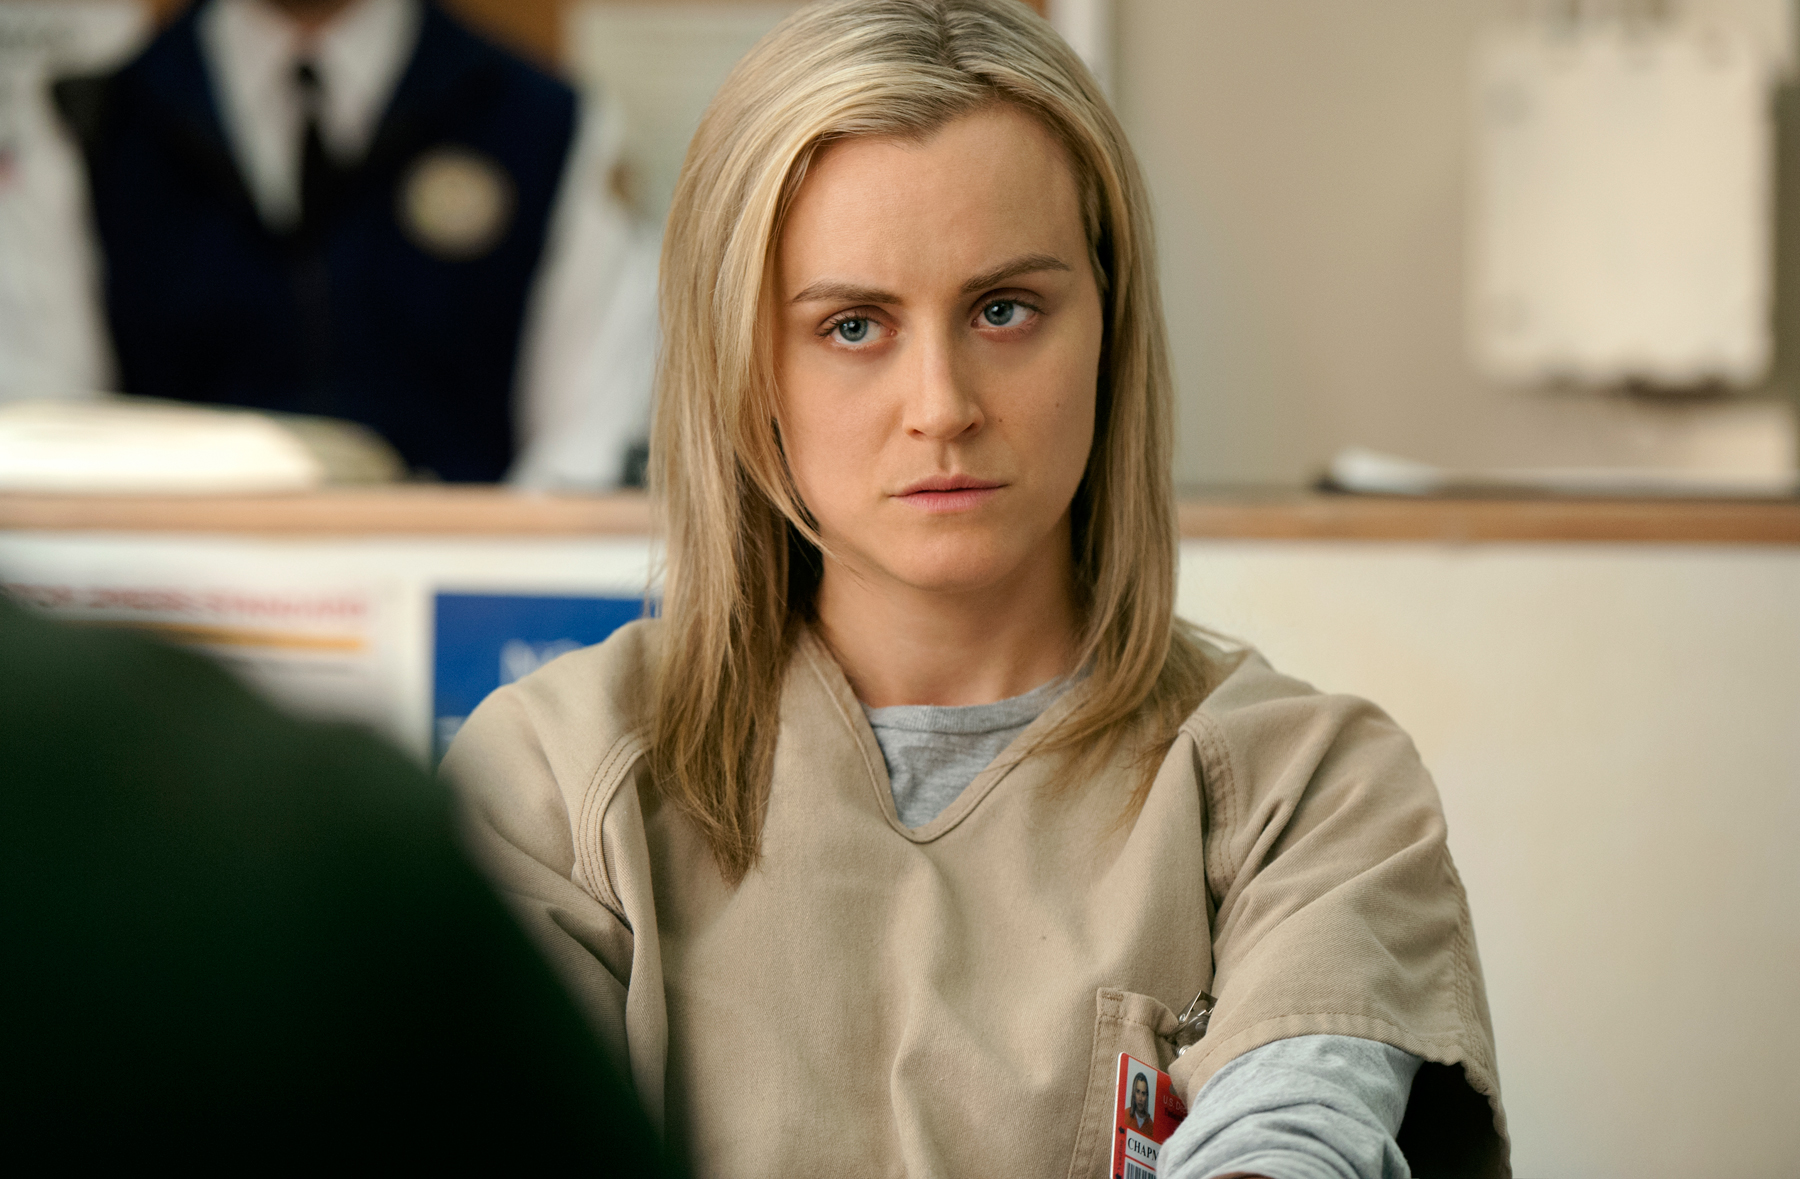 Crazy Eyes & Pornstaches: What to Know for 'OITNB' Season 2